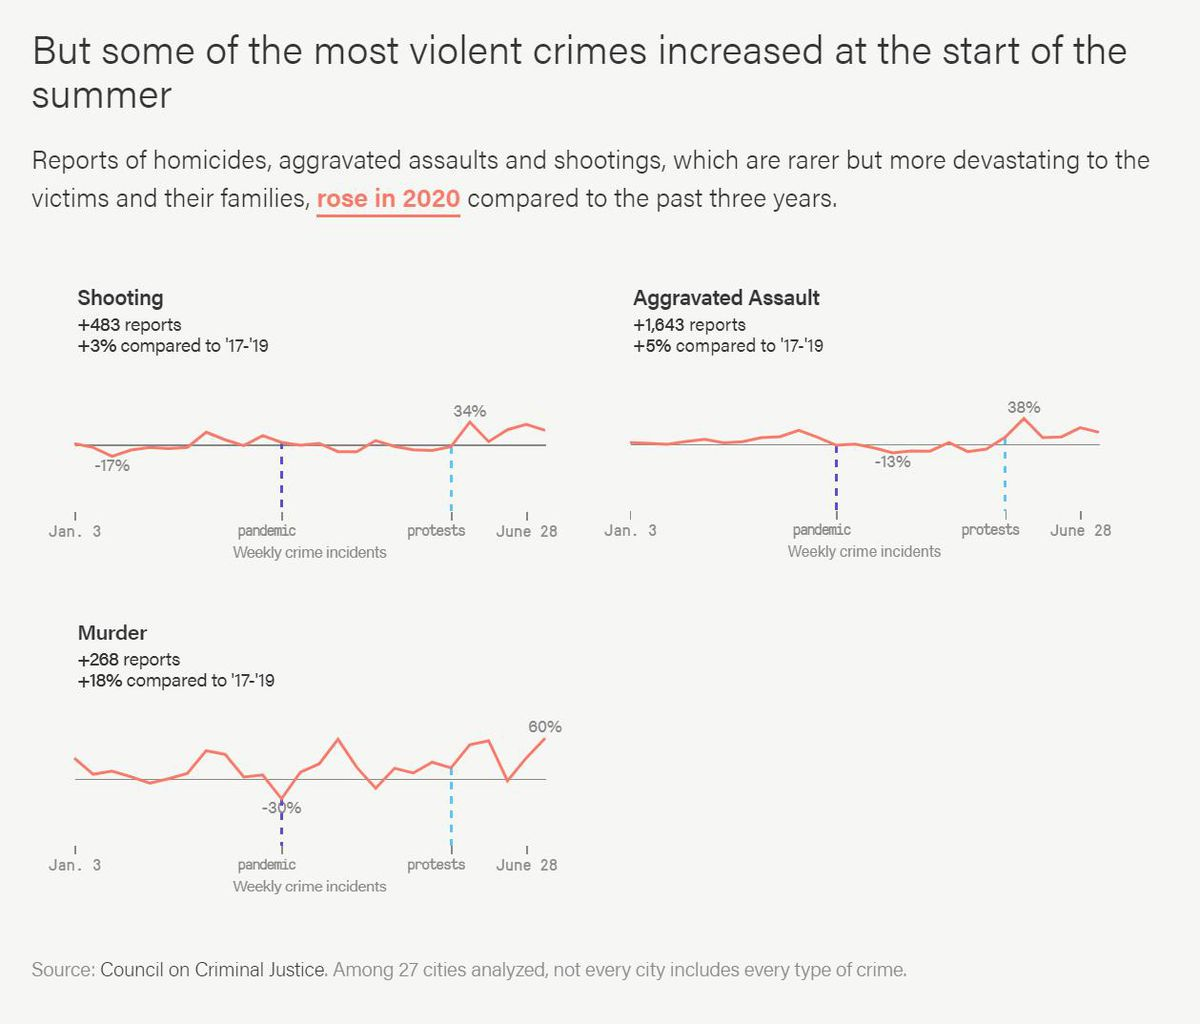 Reports of homicides, aggravated assaults and shootings, which are rarer but more devastating to the victims and their families, rose in 2020 compared to the past three years.